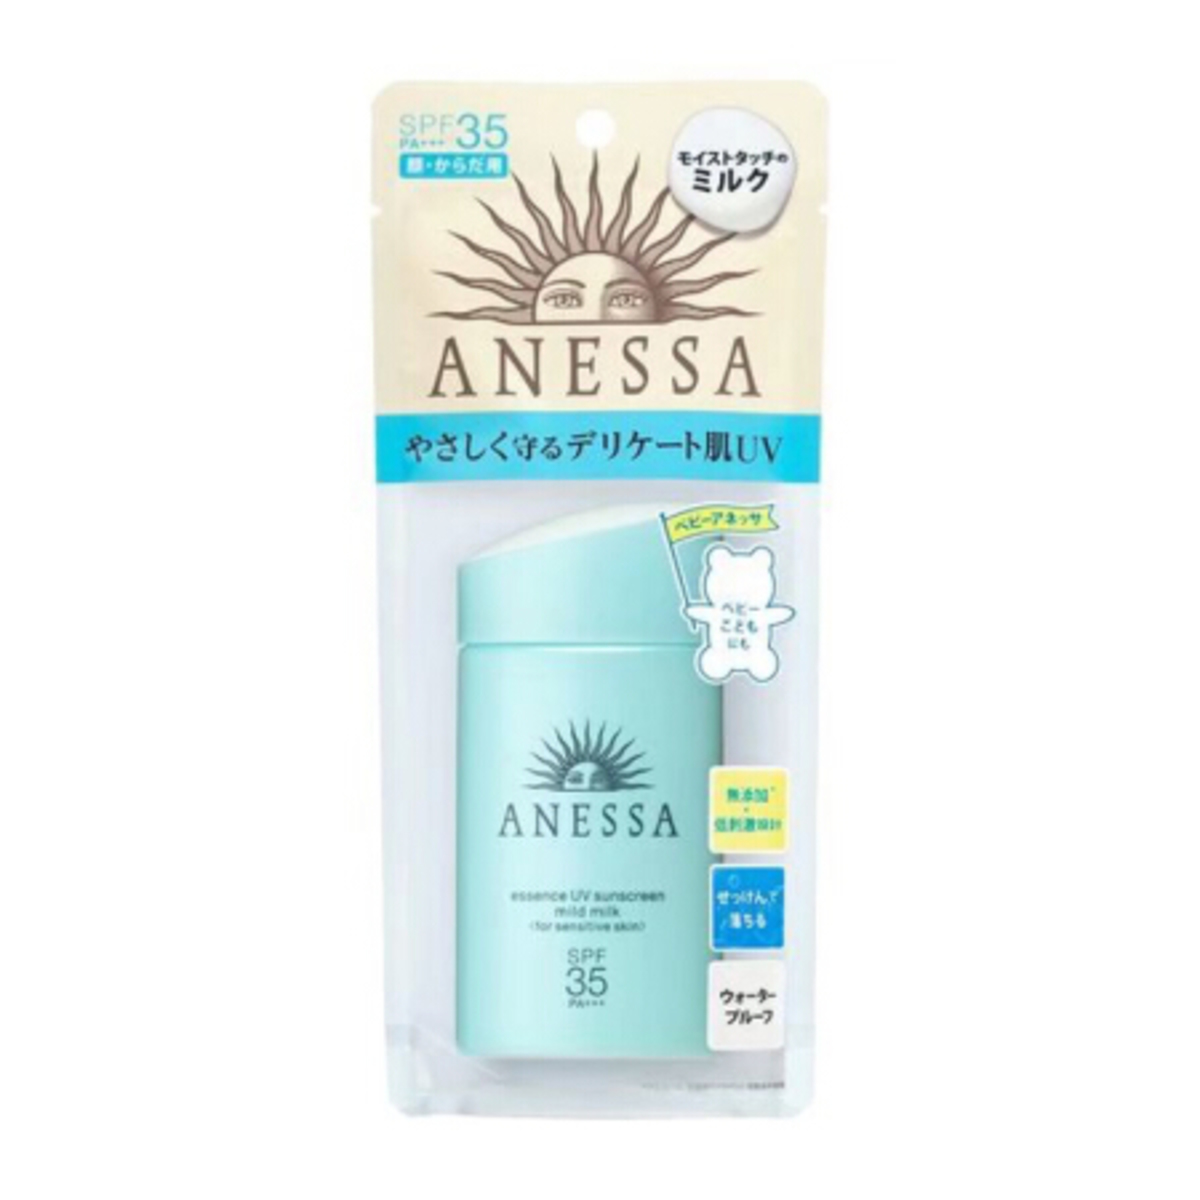 SHISEIDO ANESSA essence UV sunscreen mild milk for sensitive skin  SPF35 PA+++ 20ml(4901872083381)